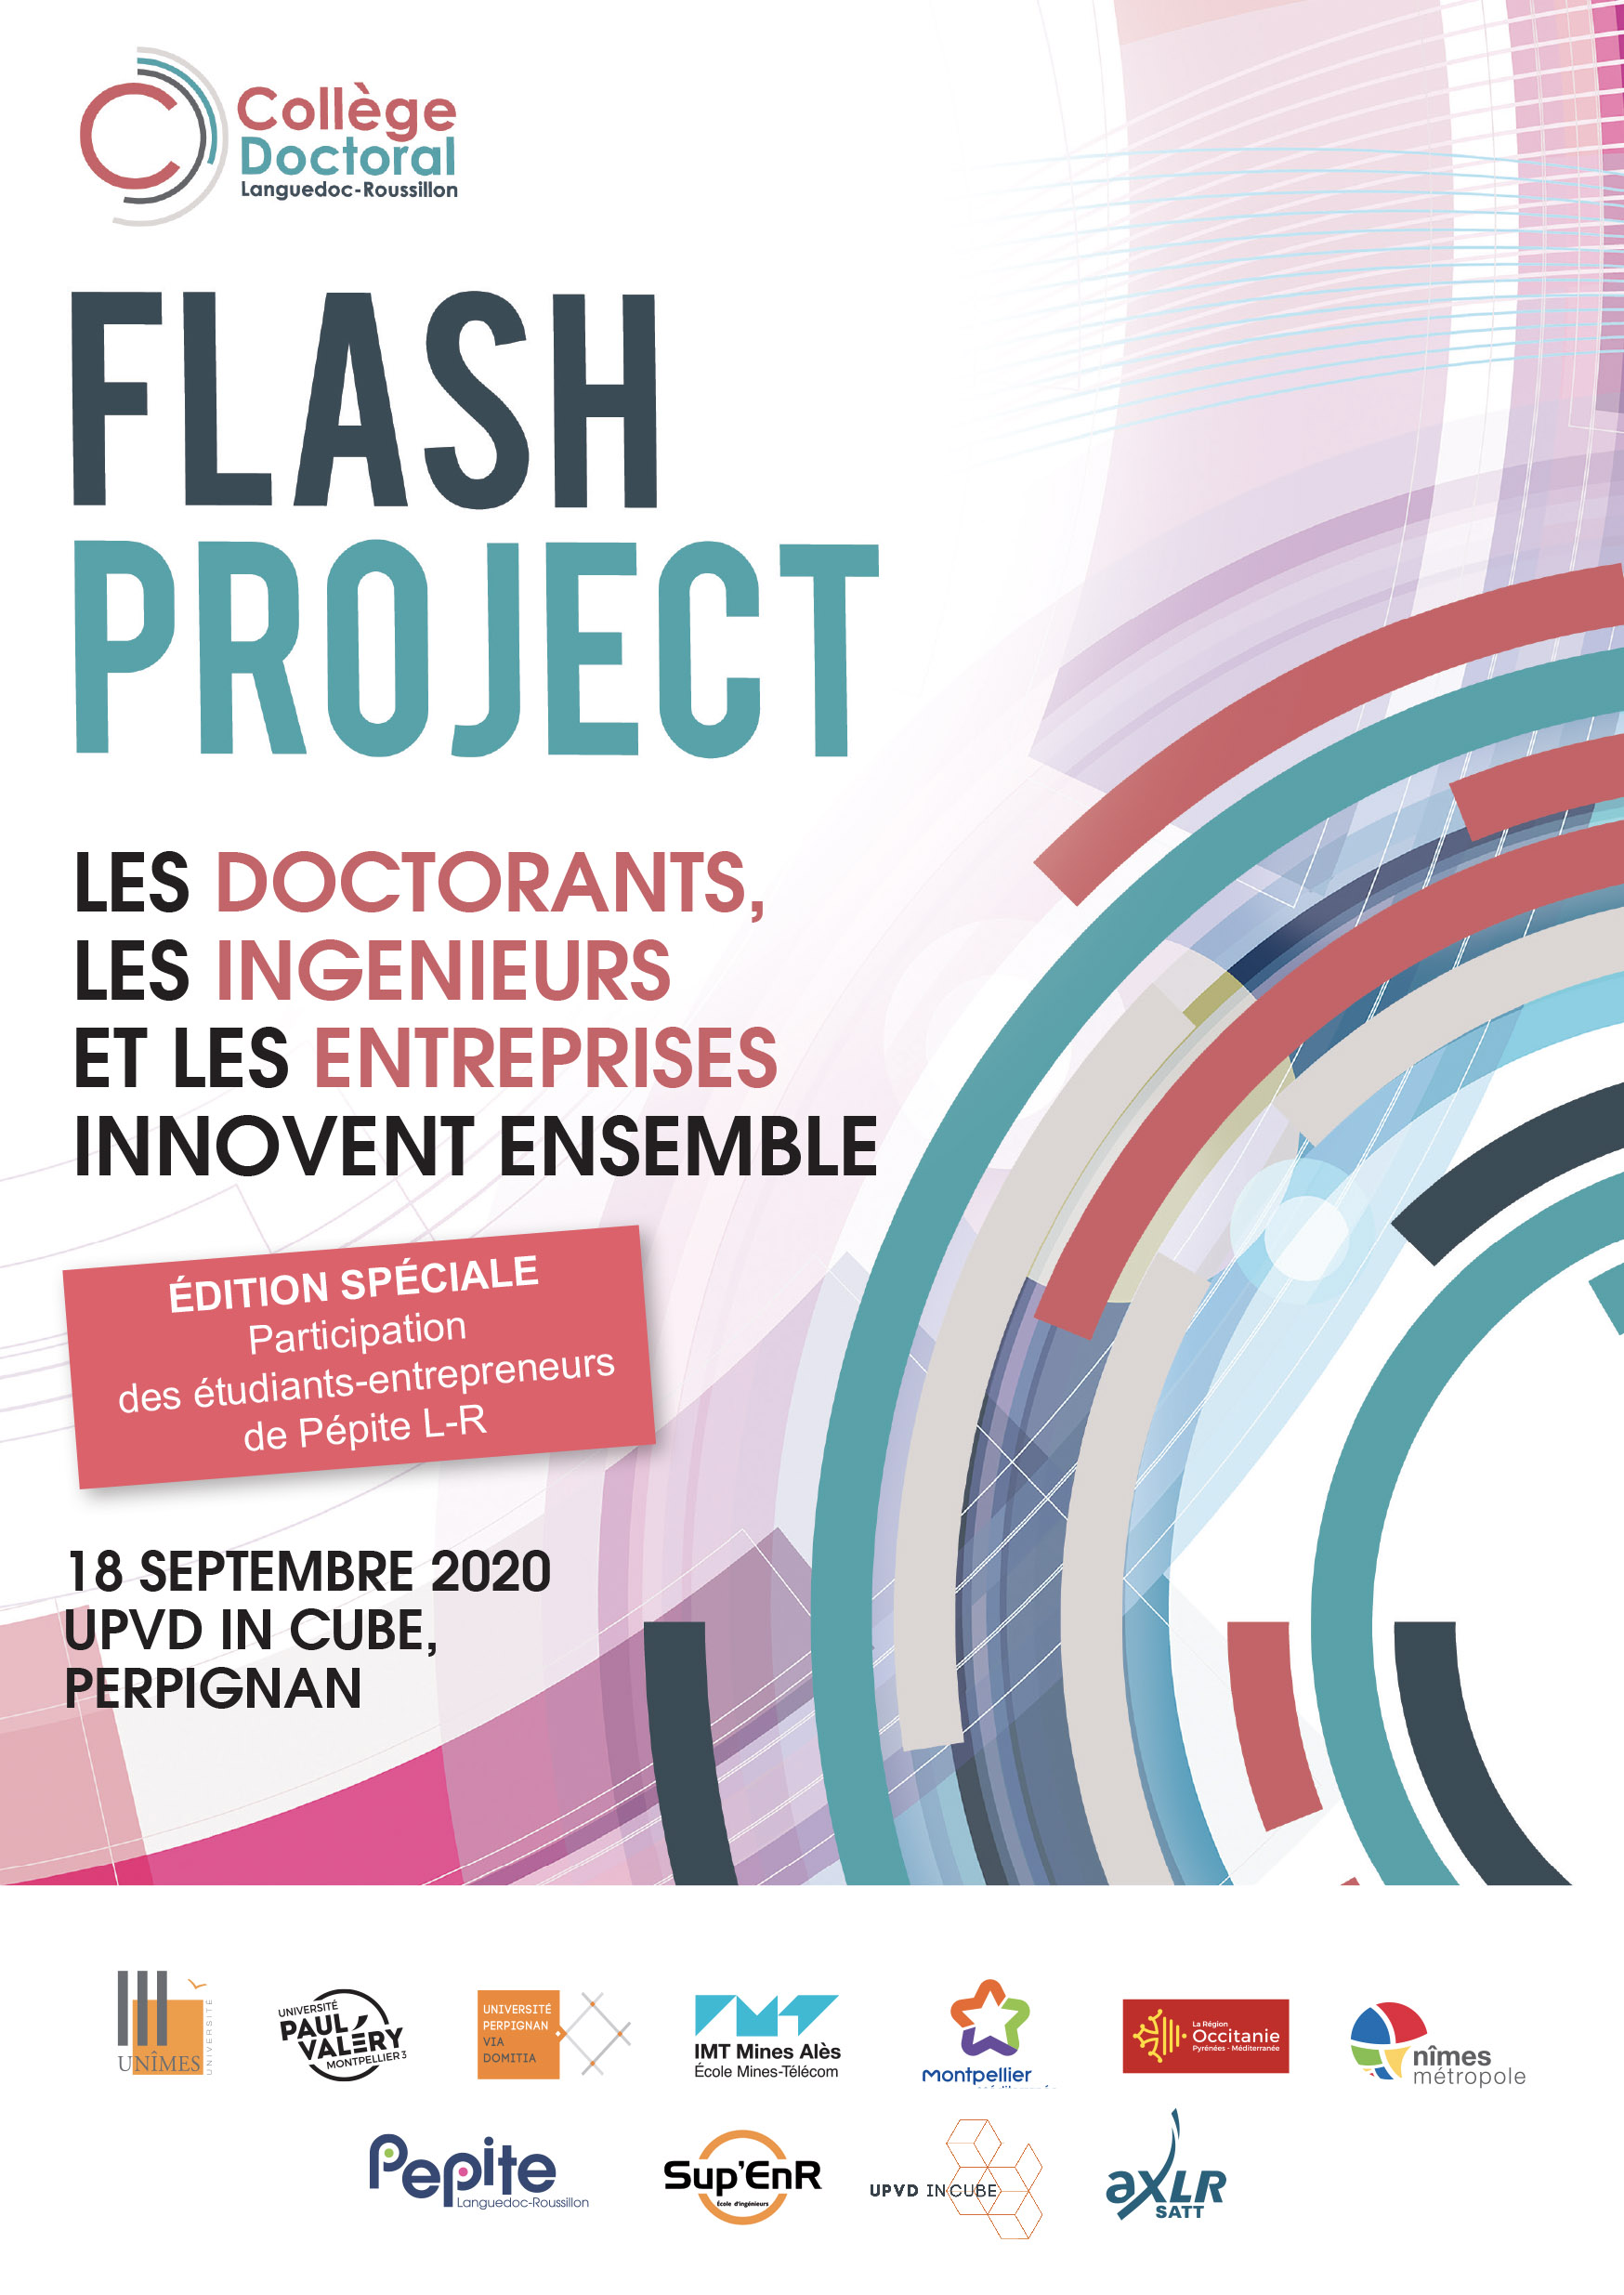 Flash project